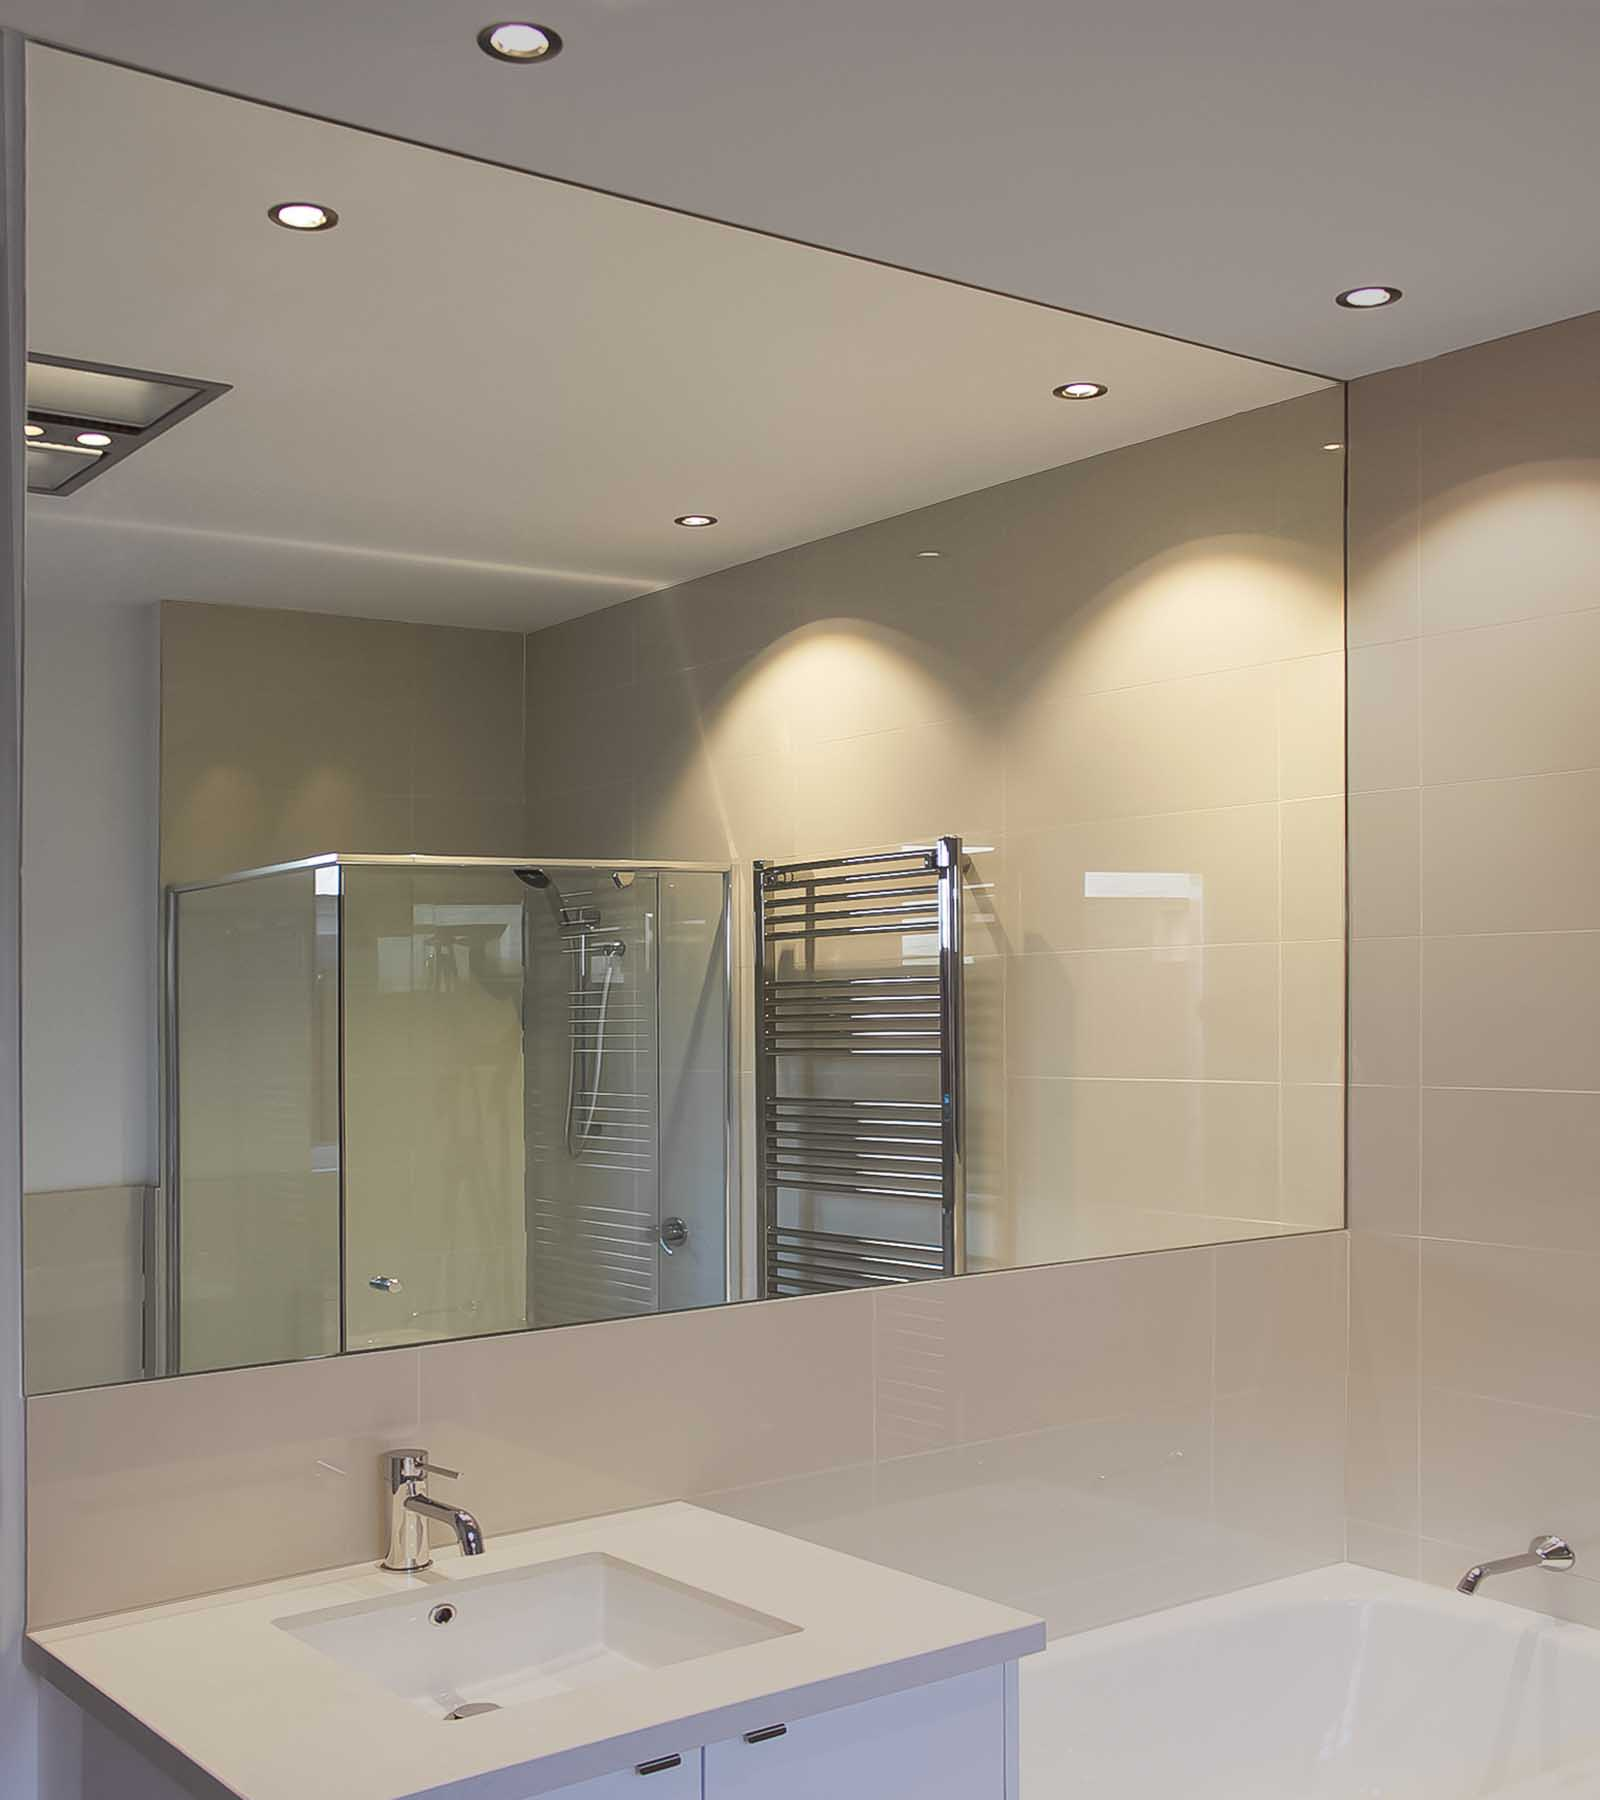 reFLECT™ - Bathroom_Mirror-Bathroom_Ensuite_Renovation_Ideas-Queenscliff - Supplied & Installed by - geelongsplashbacks.com.au.jpg